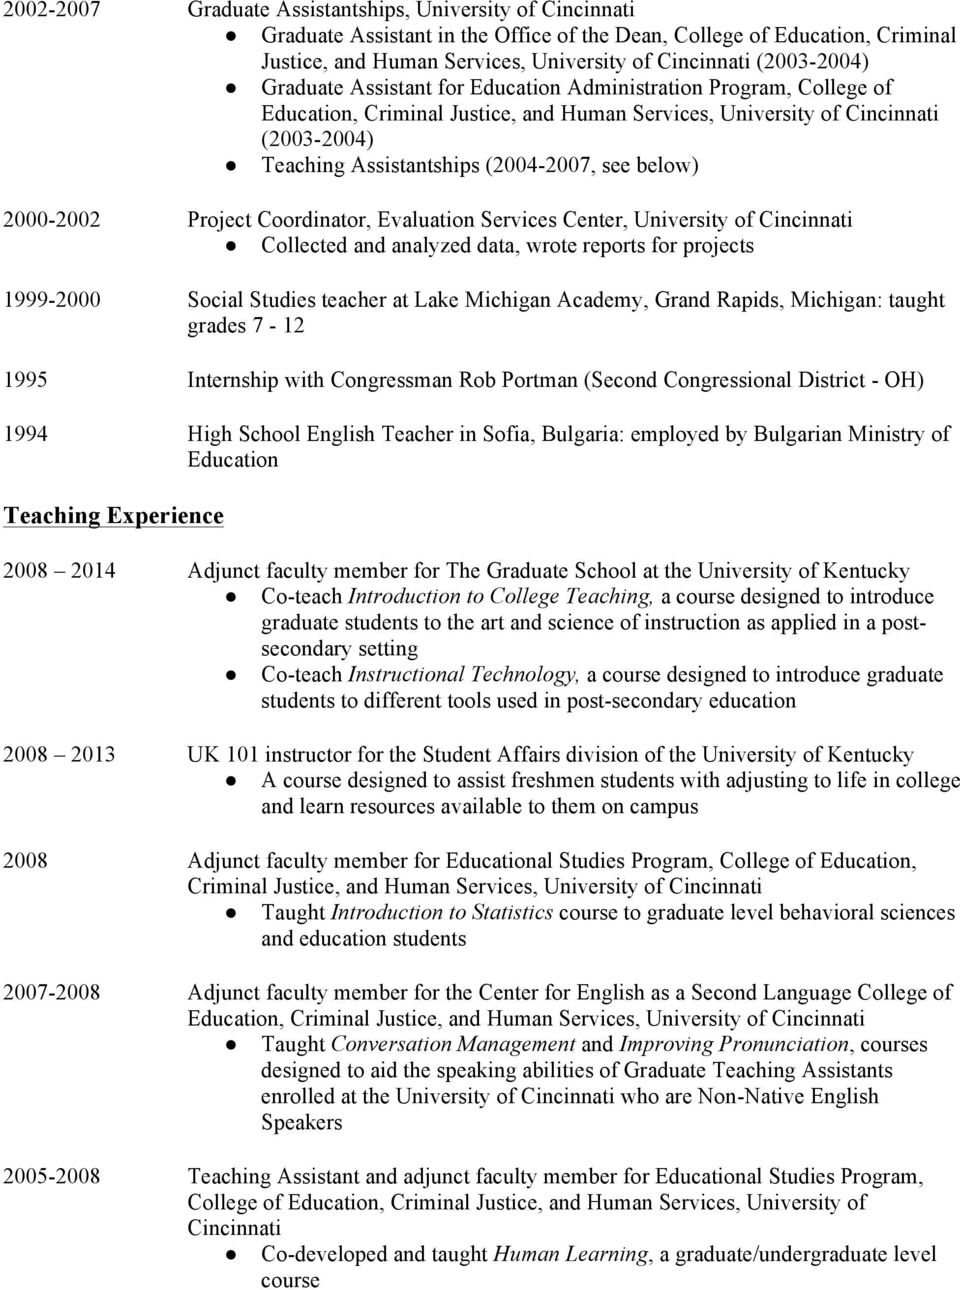 (2004-2007, see below) 2000-2002 Project Coordinator, Evaluation Services Center, University of Cincinnati Collected and analyzed data, wrote reports for projects 1999-2000 Social Studies teacher at